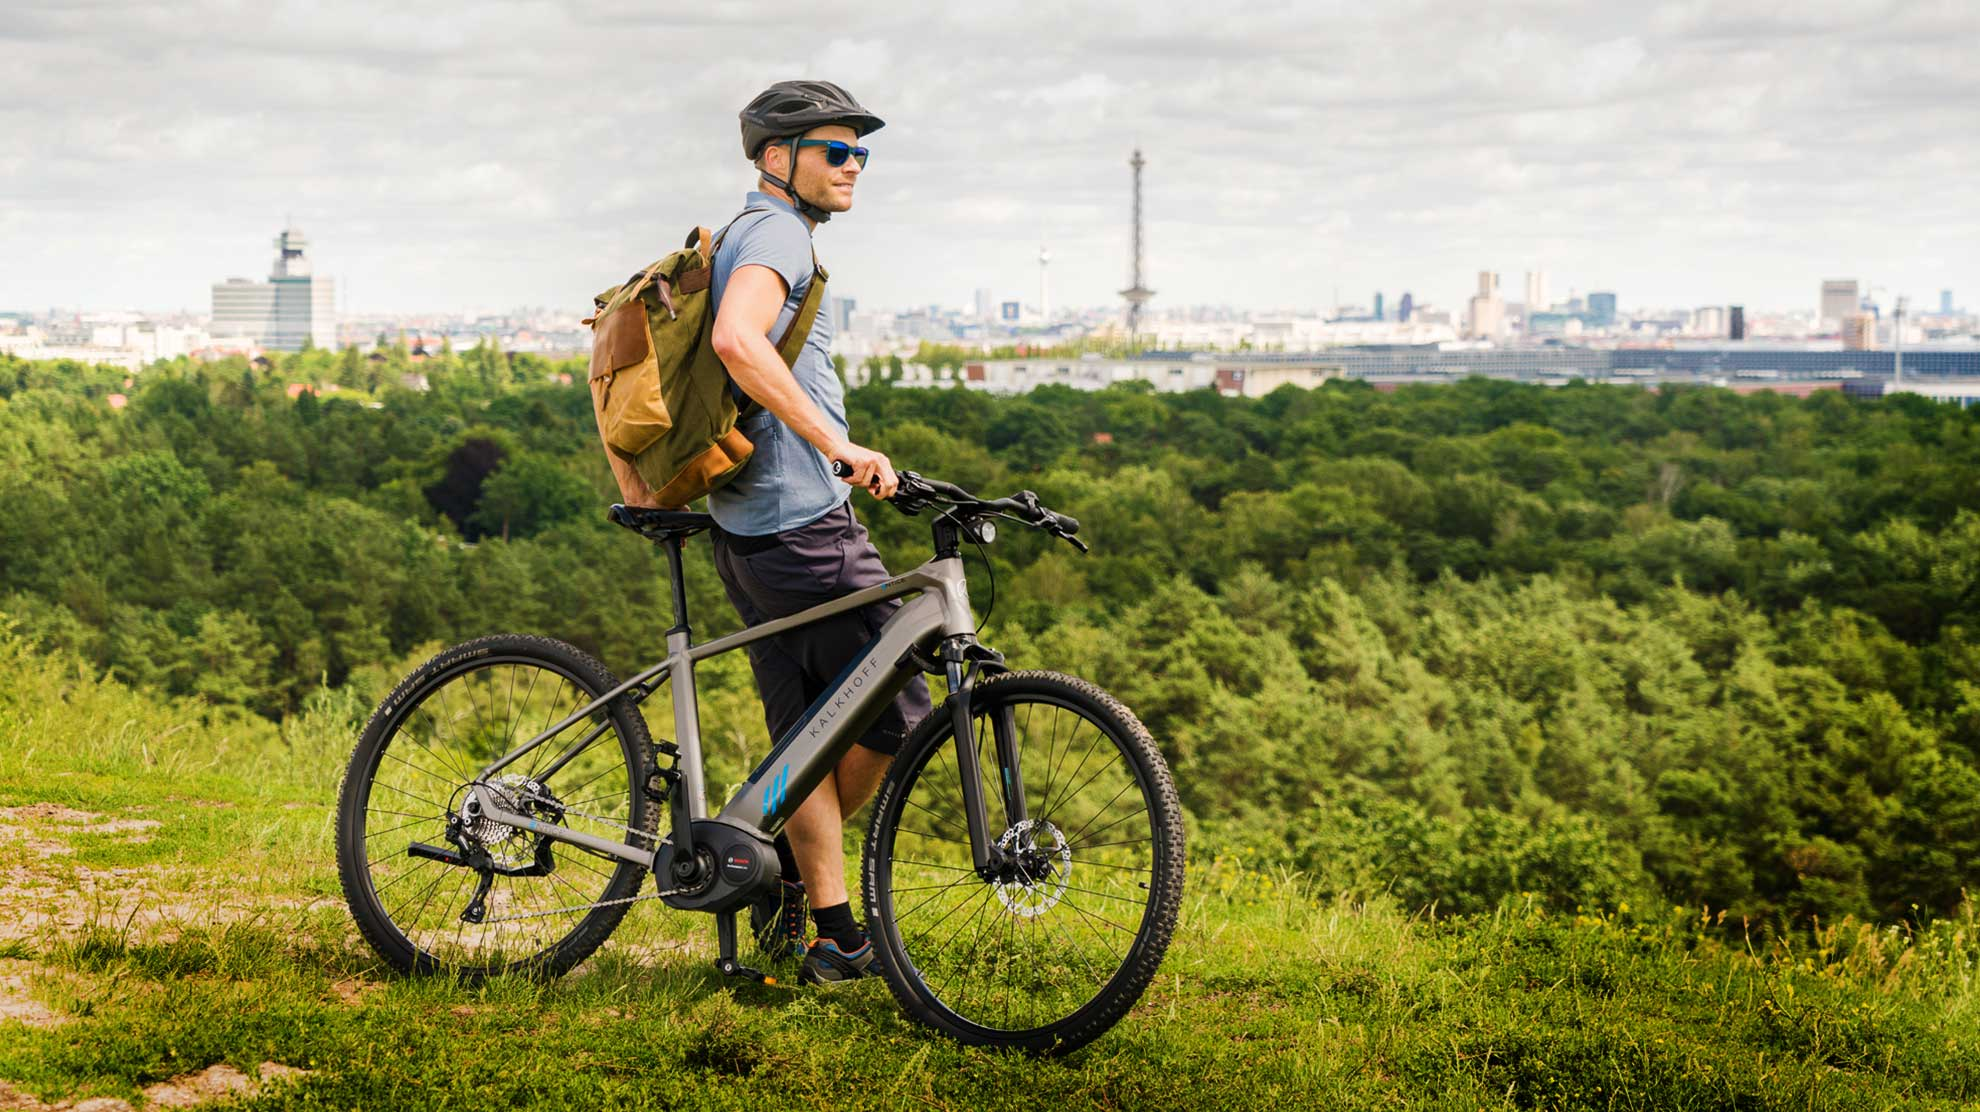 E-Bike growth predicted in light of Covid 19